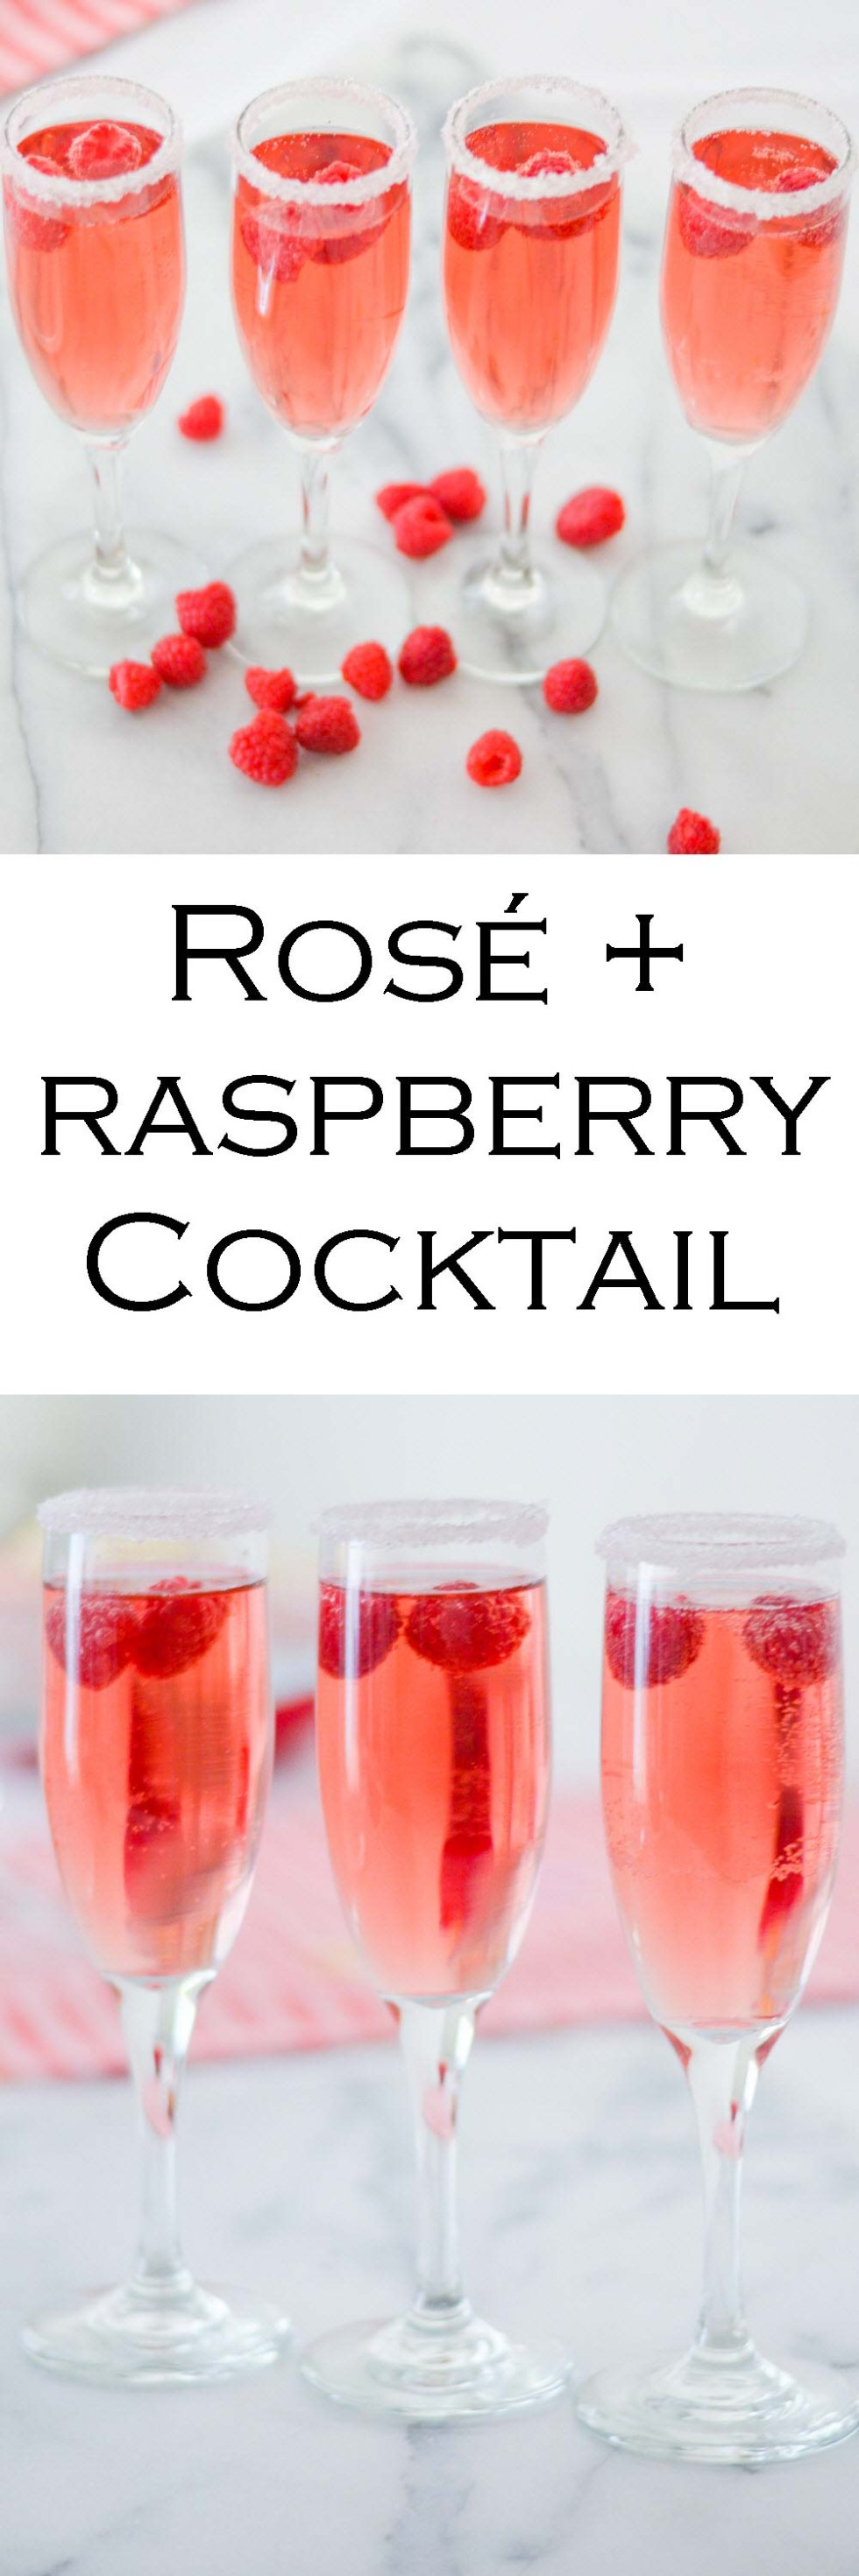 Rosé Cocktail w. Raspberries - Great Drink for Galentine's Day #galentine #galentinesday #rose #sparklingwine #sparklingrose #raspberries #raspberryrcipes #cocktailrecipe #drinkrecipe #foodblog #foodblogger #LMrecipes